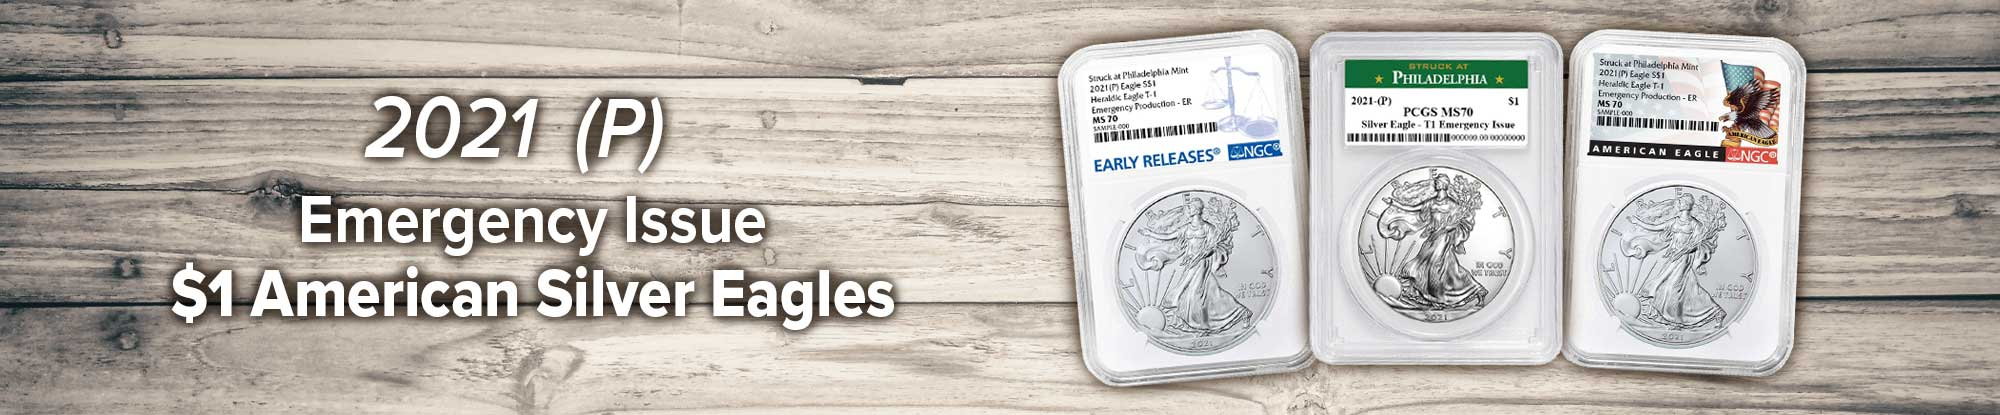 2021 (P) $1 American Silver Eagle Emergency Production